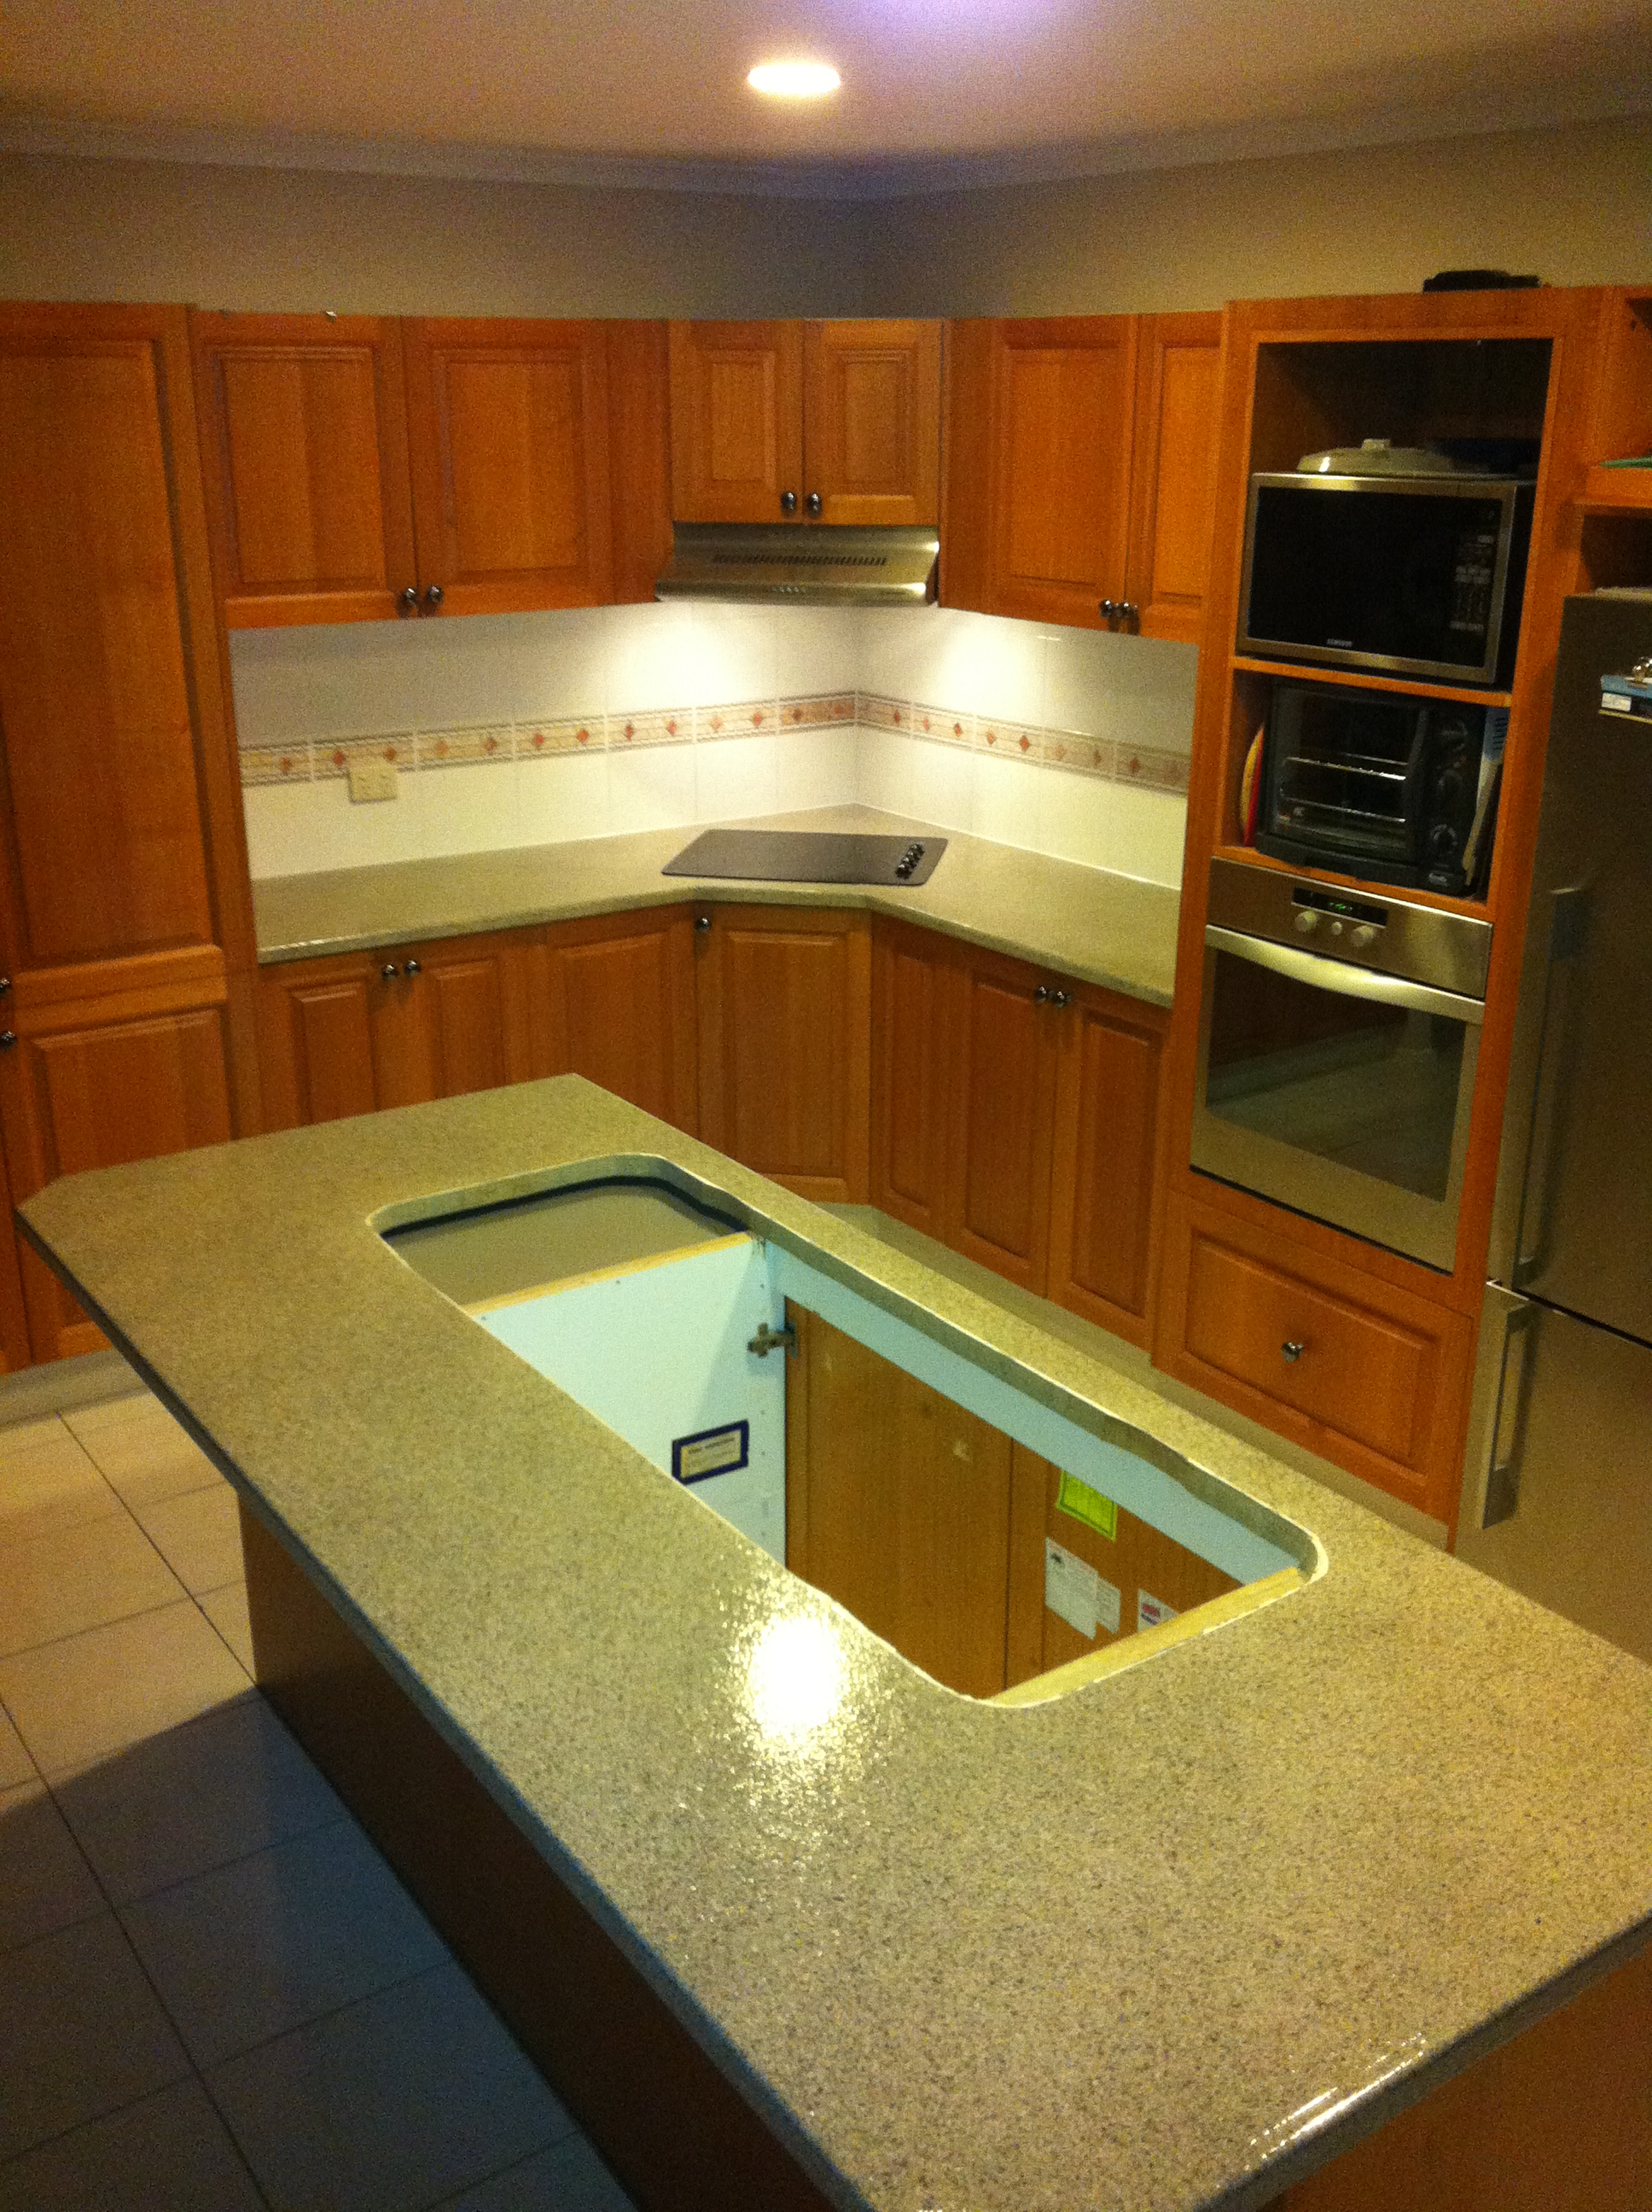 Kitchens Gold Coast: Which Layout Suits You? | Renew Kitchen and ...